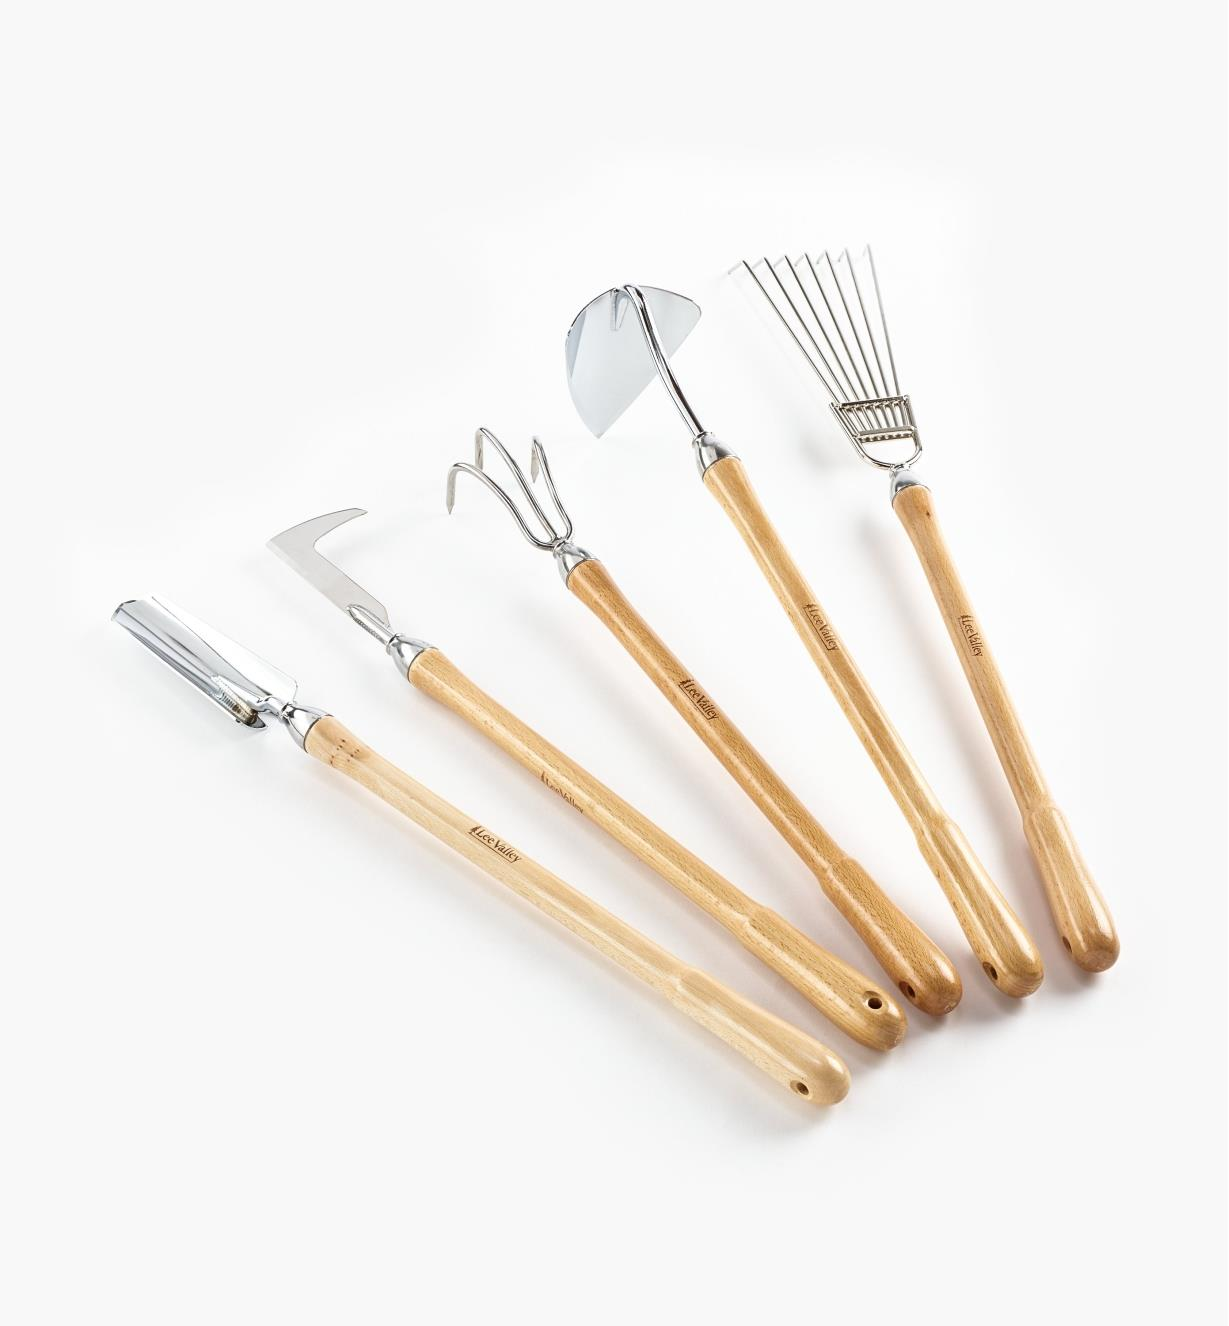 AB674 - Set of all 5 Lee Valley Mid-Length Garden Tools